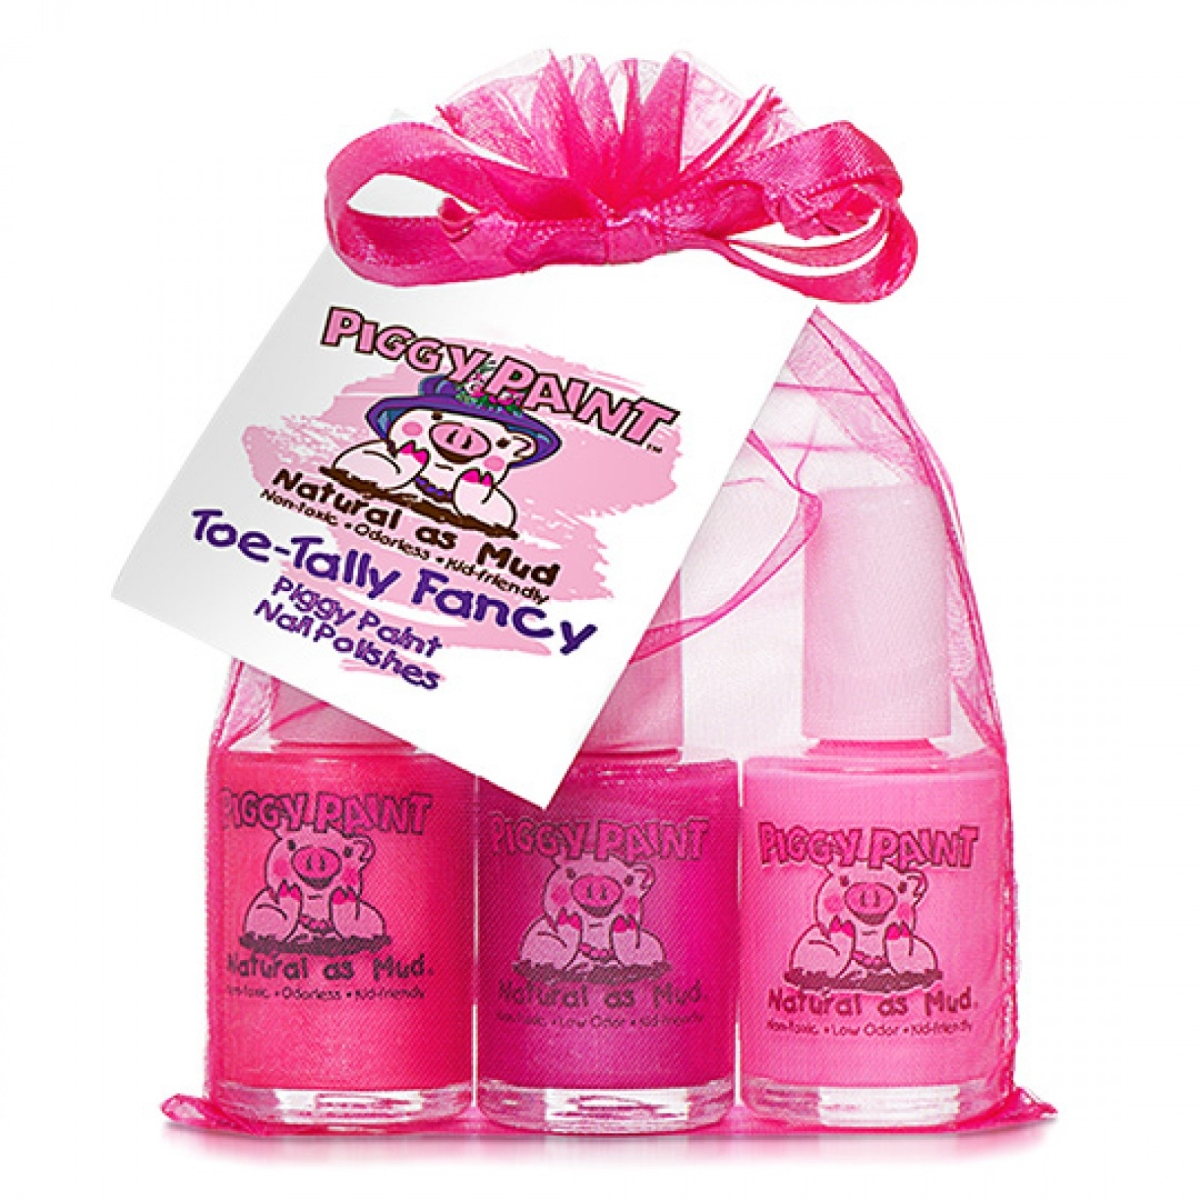 Frontier 230338 Piggy Paint Toe-Tally Fancy Gift Sets